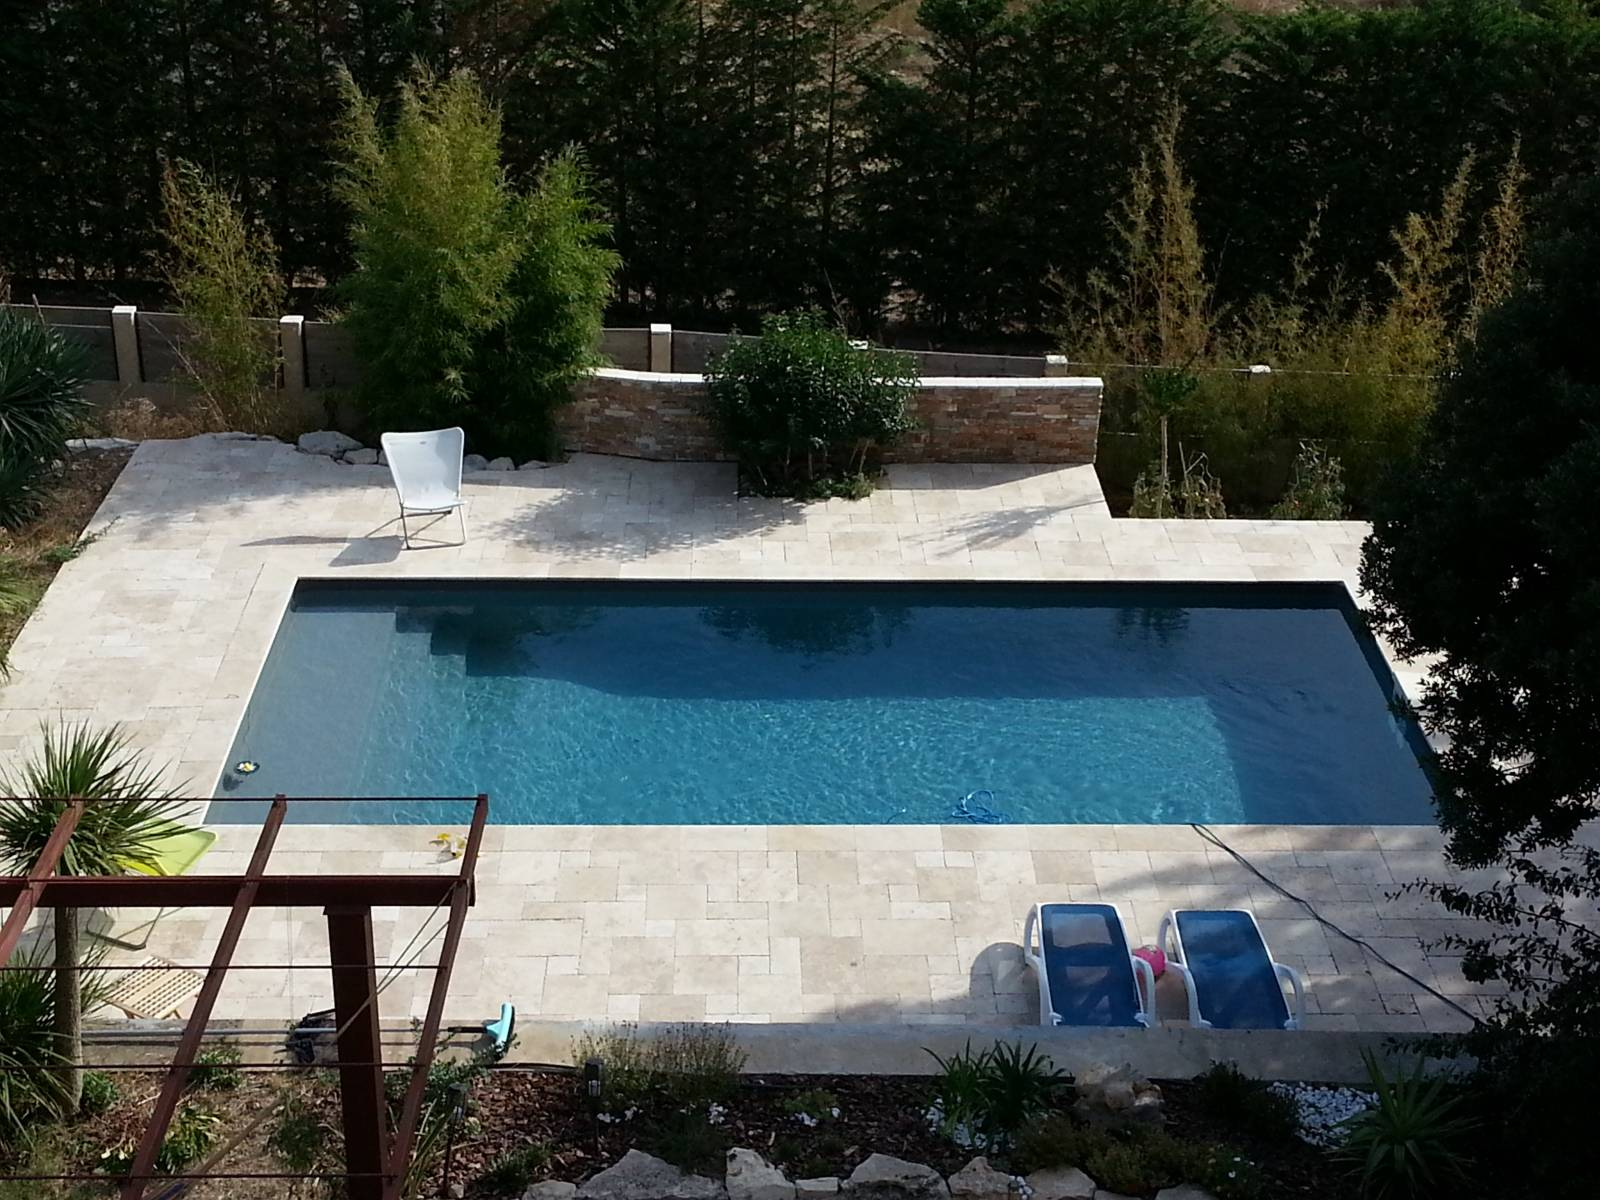 Piscine 9x4m rectangulaire gris anthracite avec filtration for Piscine desjoyaux